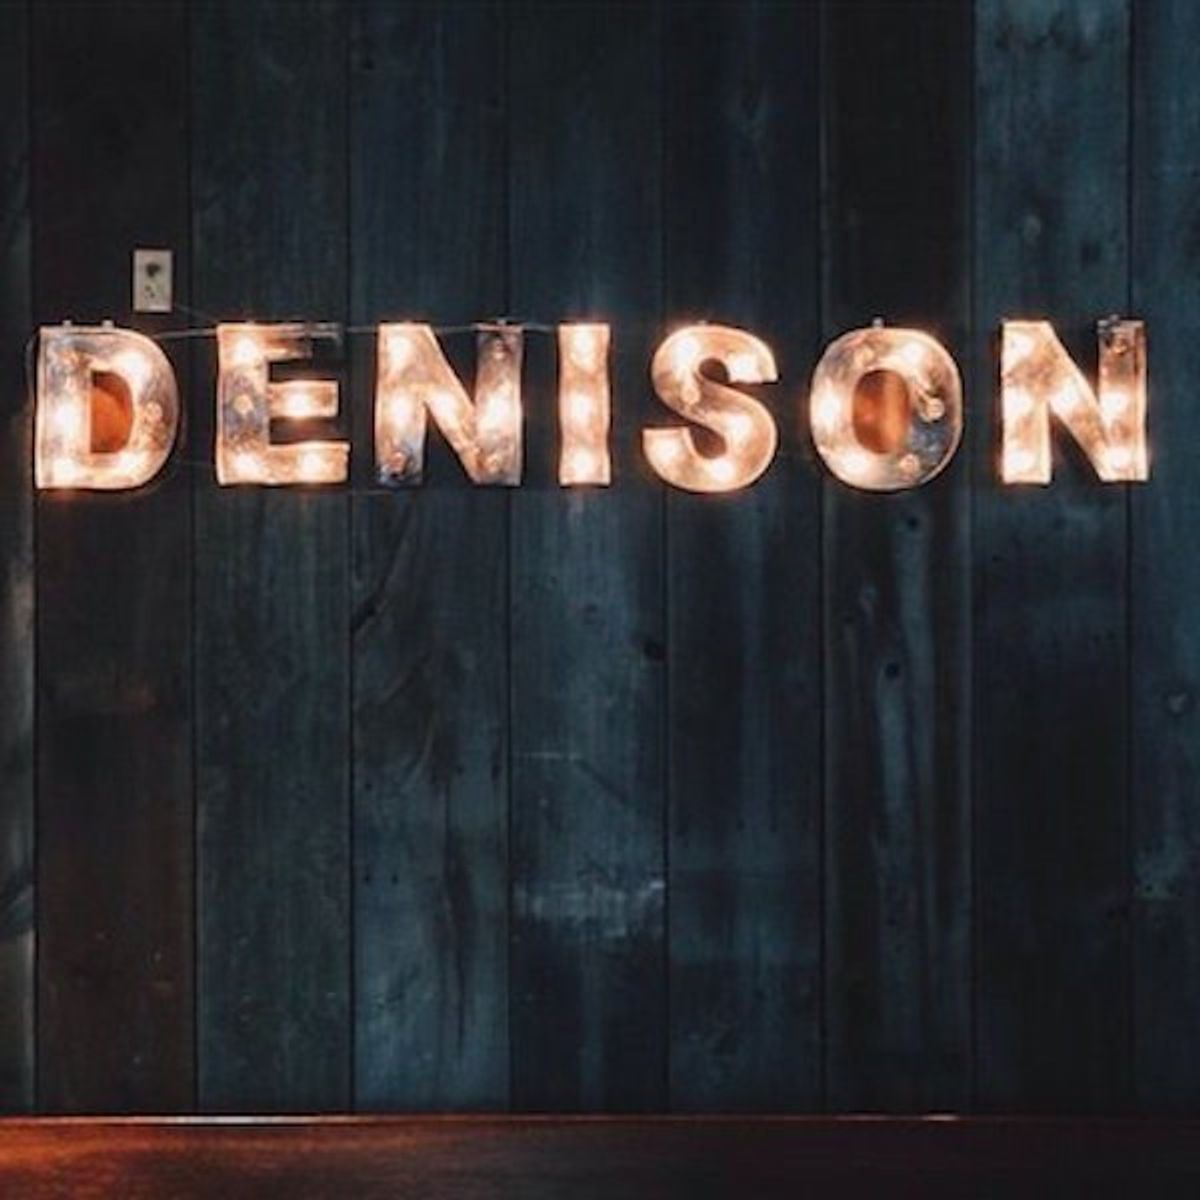 Not Another Love Letter to Denison